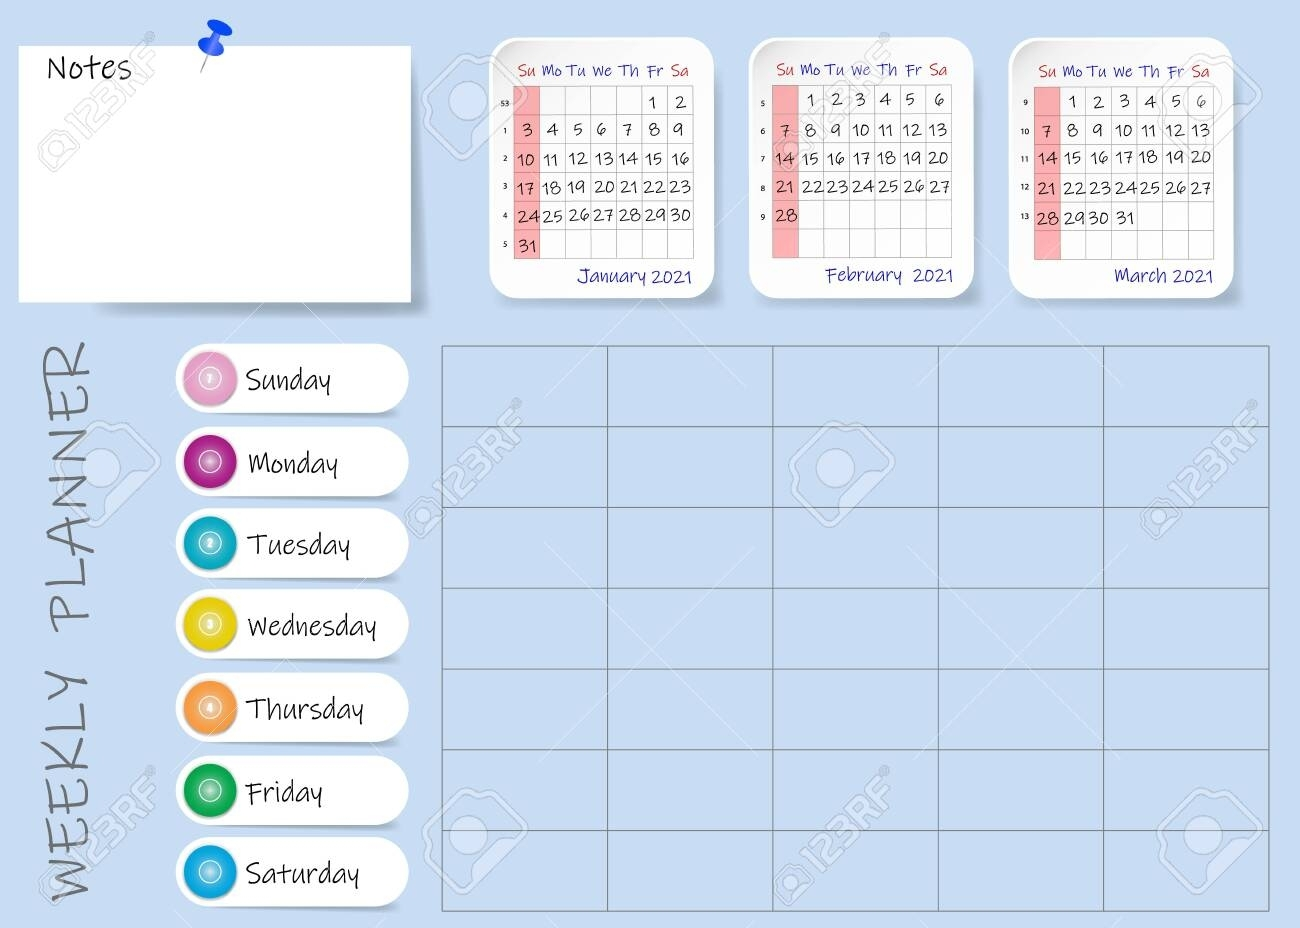 Calendar Of First Quarter Of 2021 Year With Weekly Planner Table..